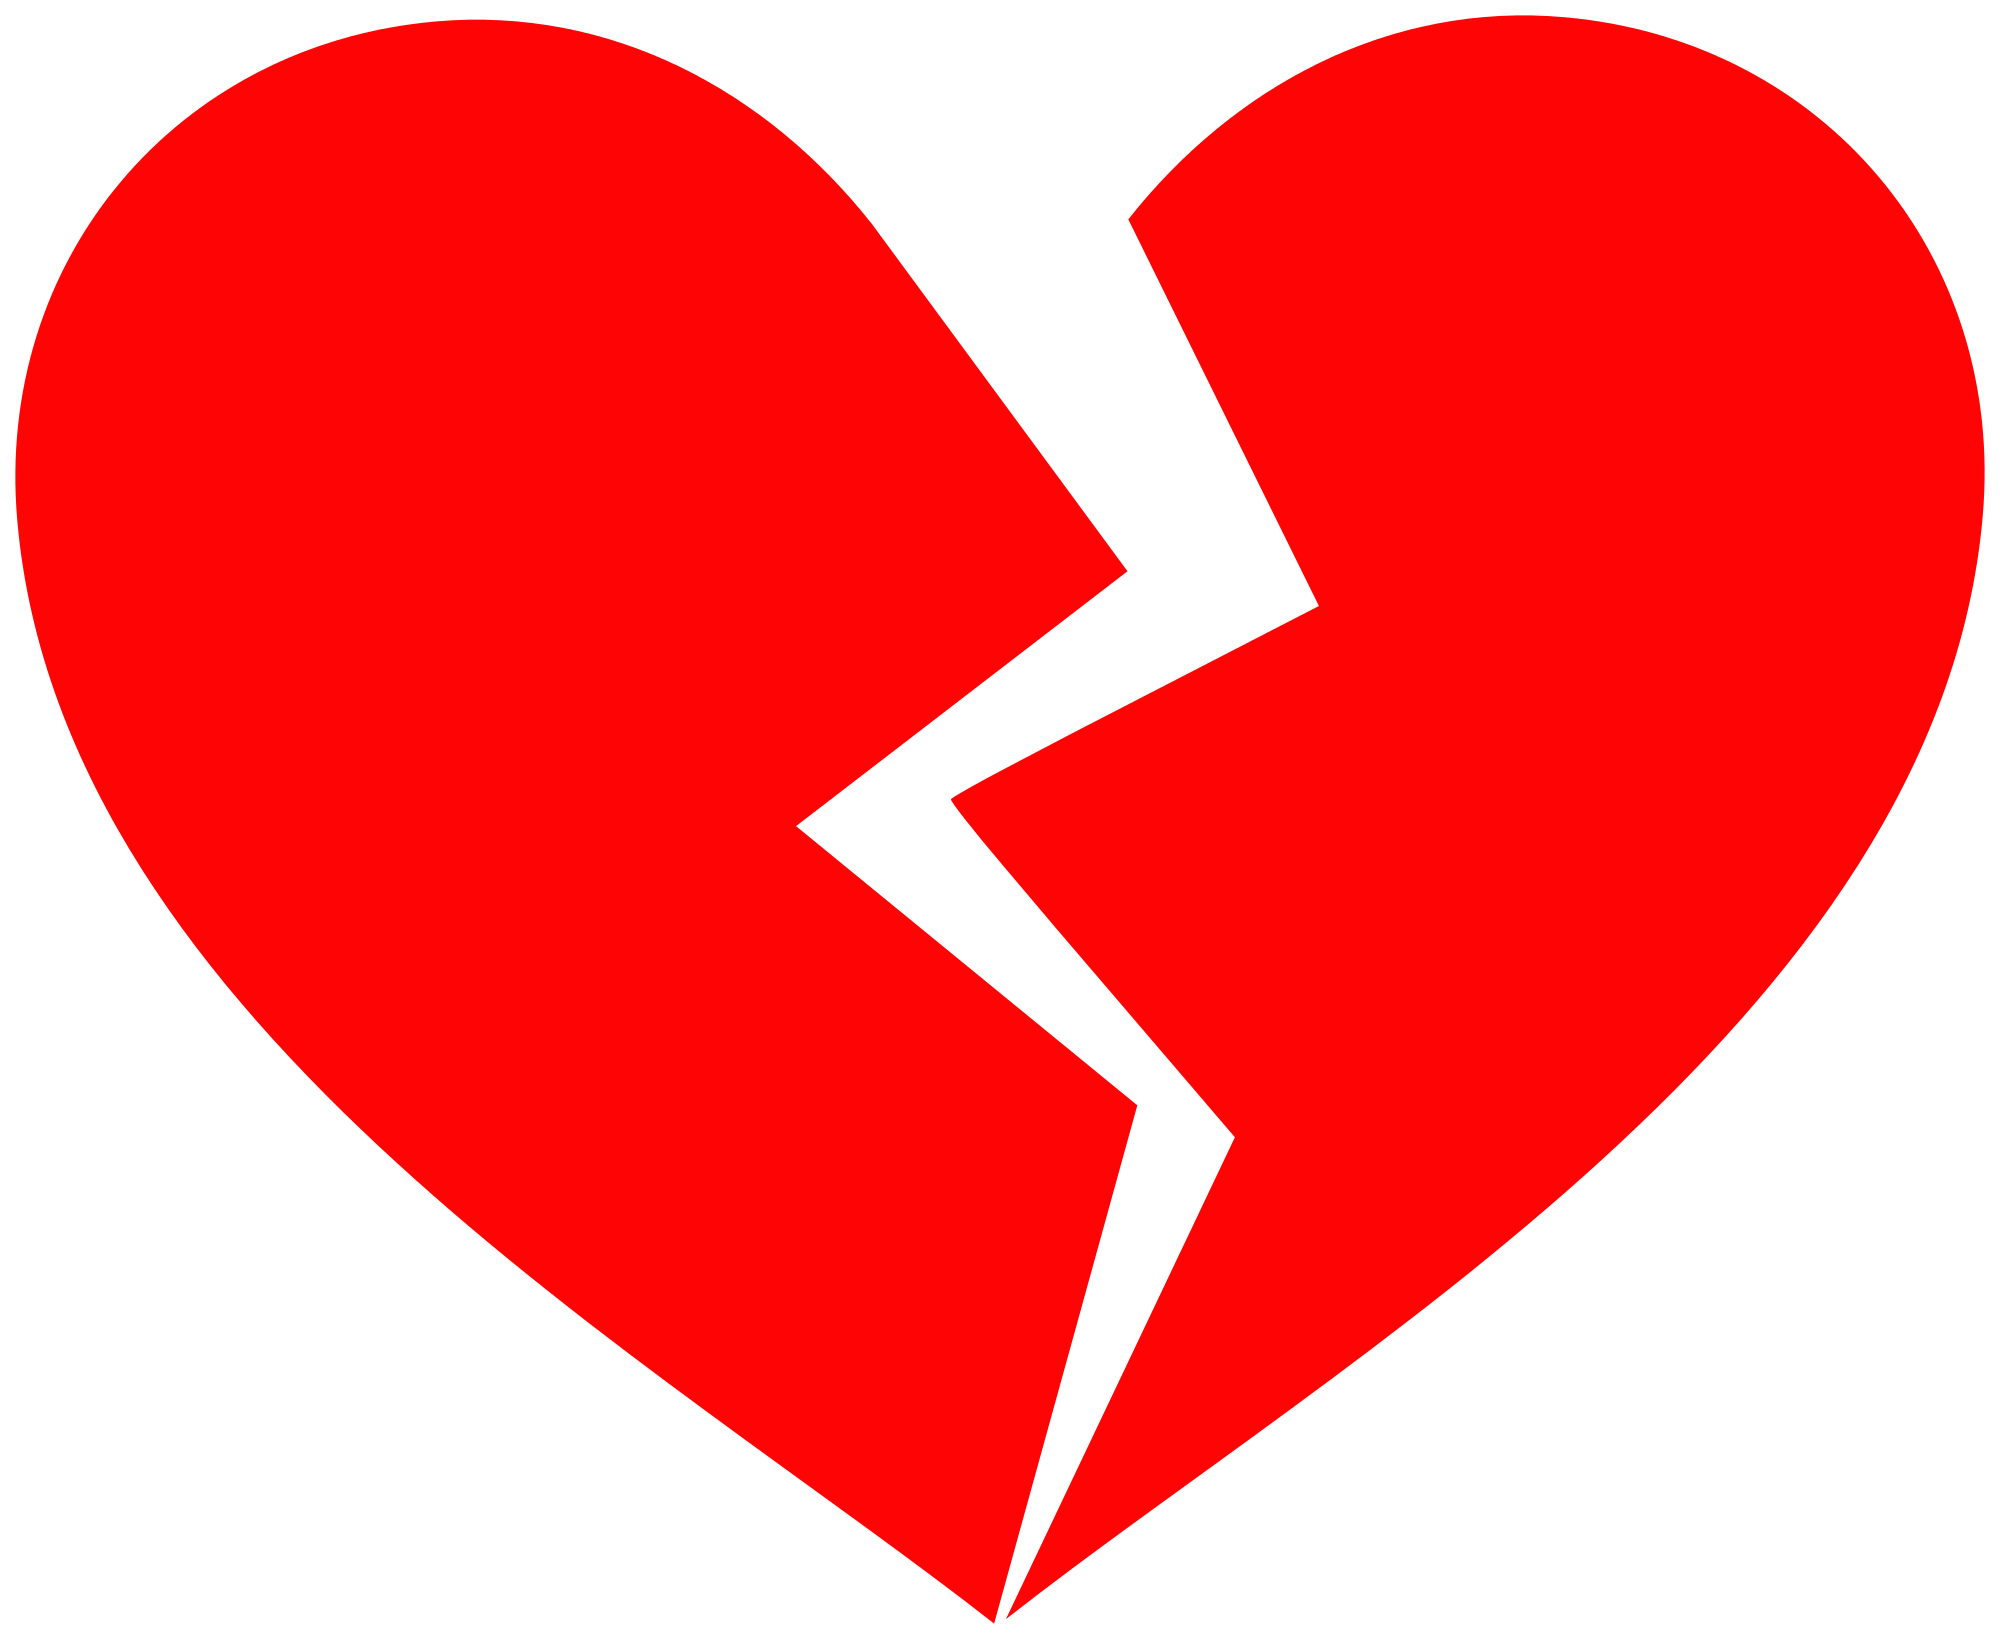 Broken Heart: 55 Best Broken Heart Pictures And Images